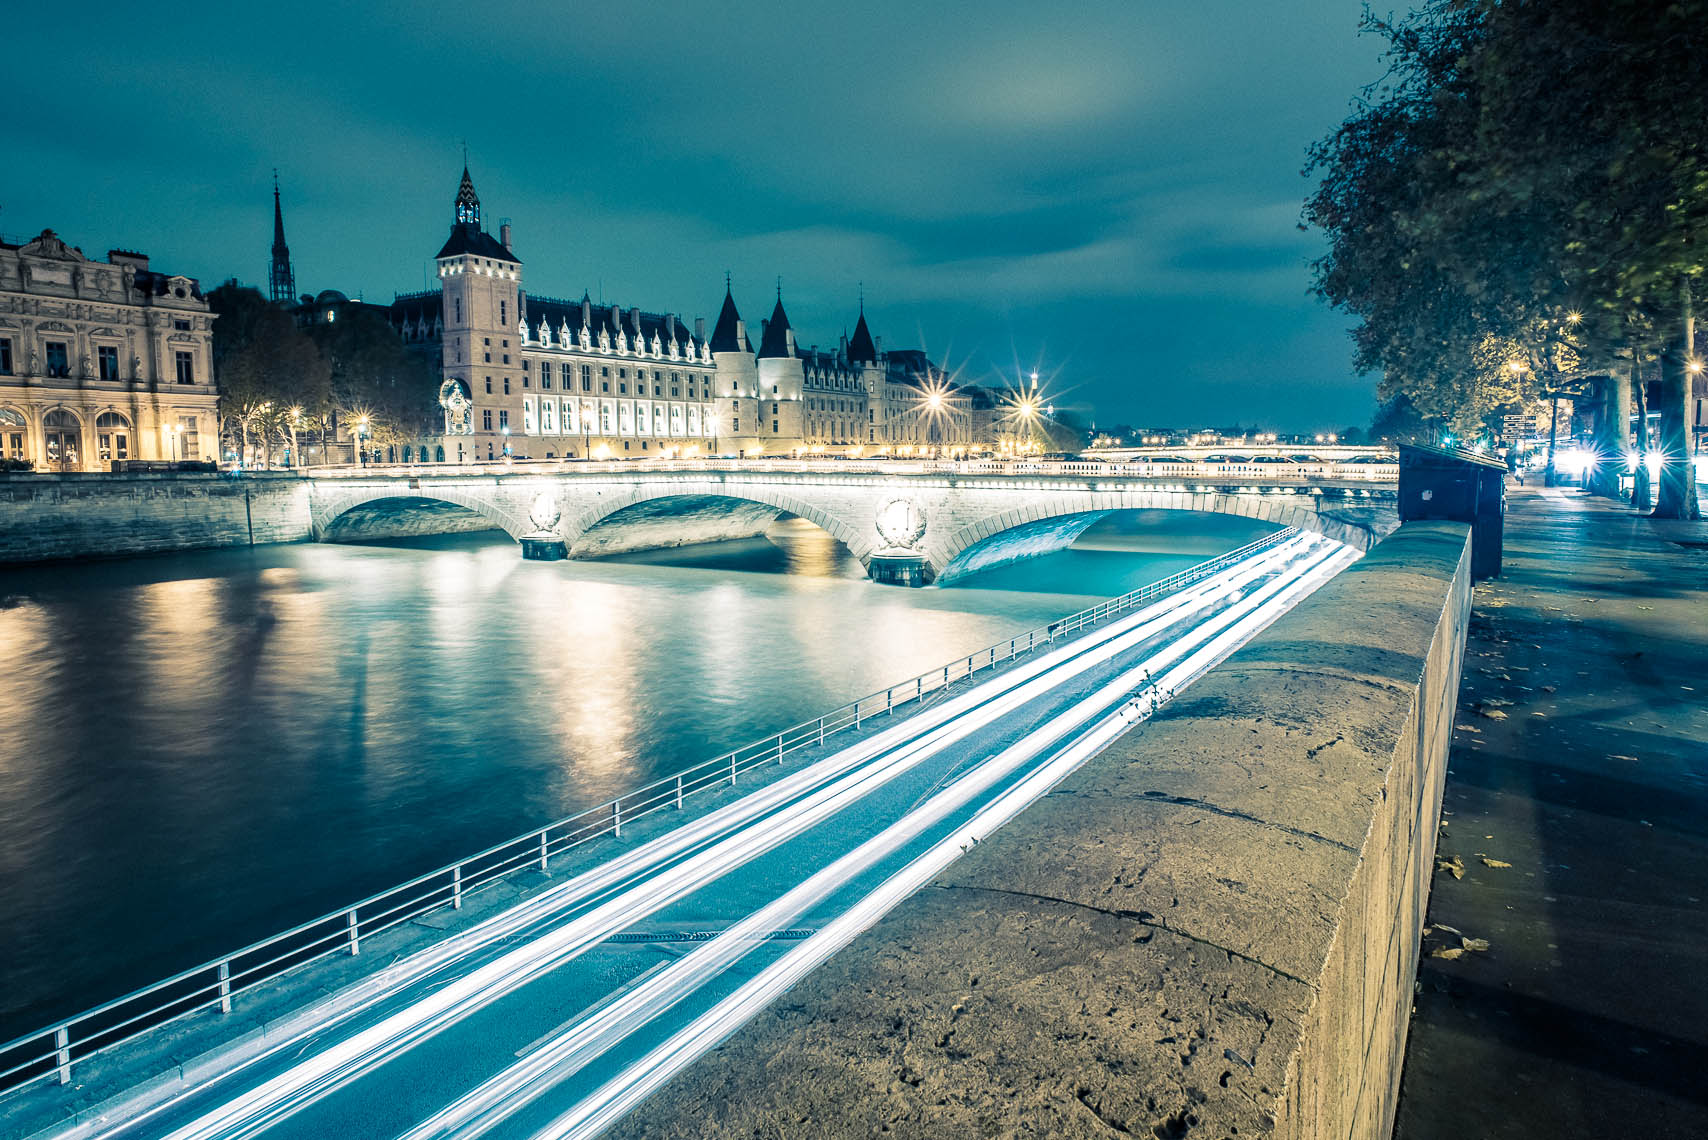 025_Paris by D800_La Seine